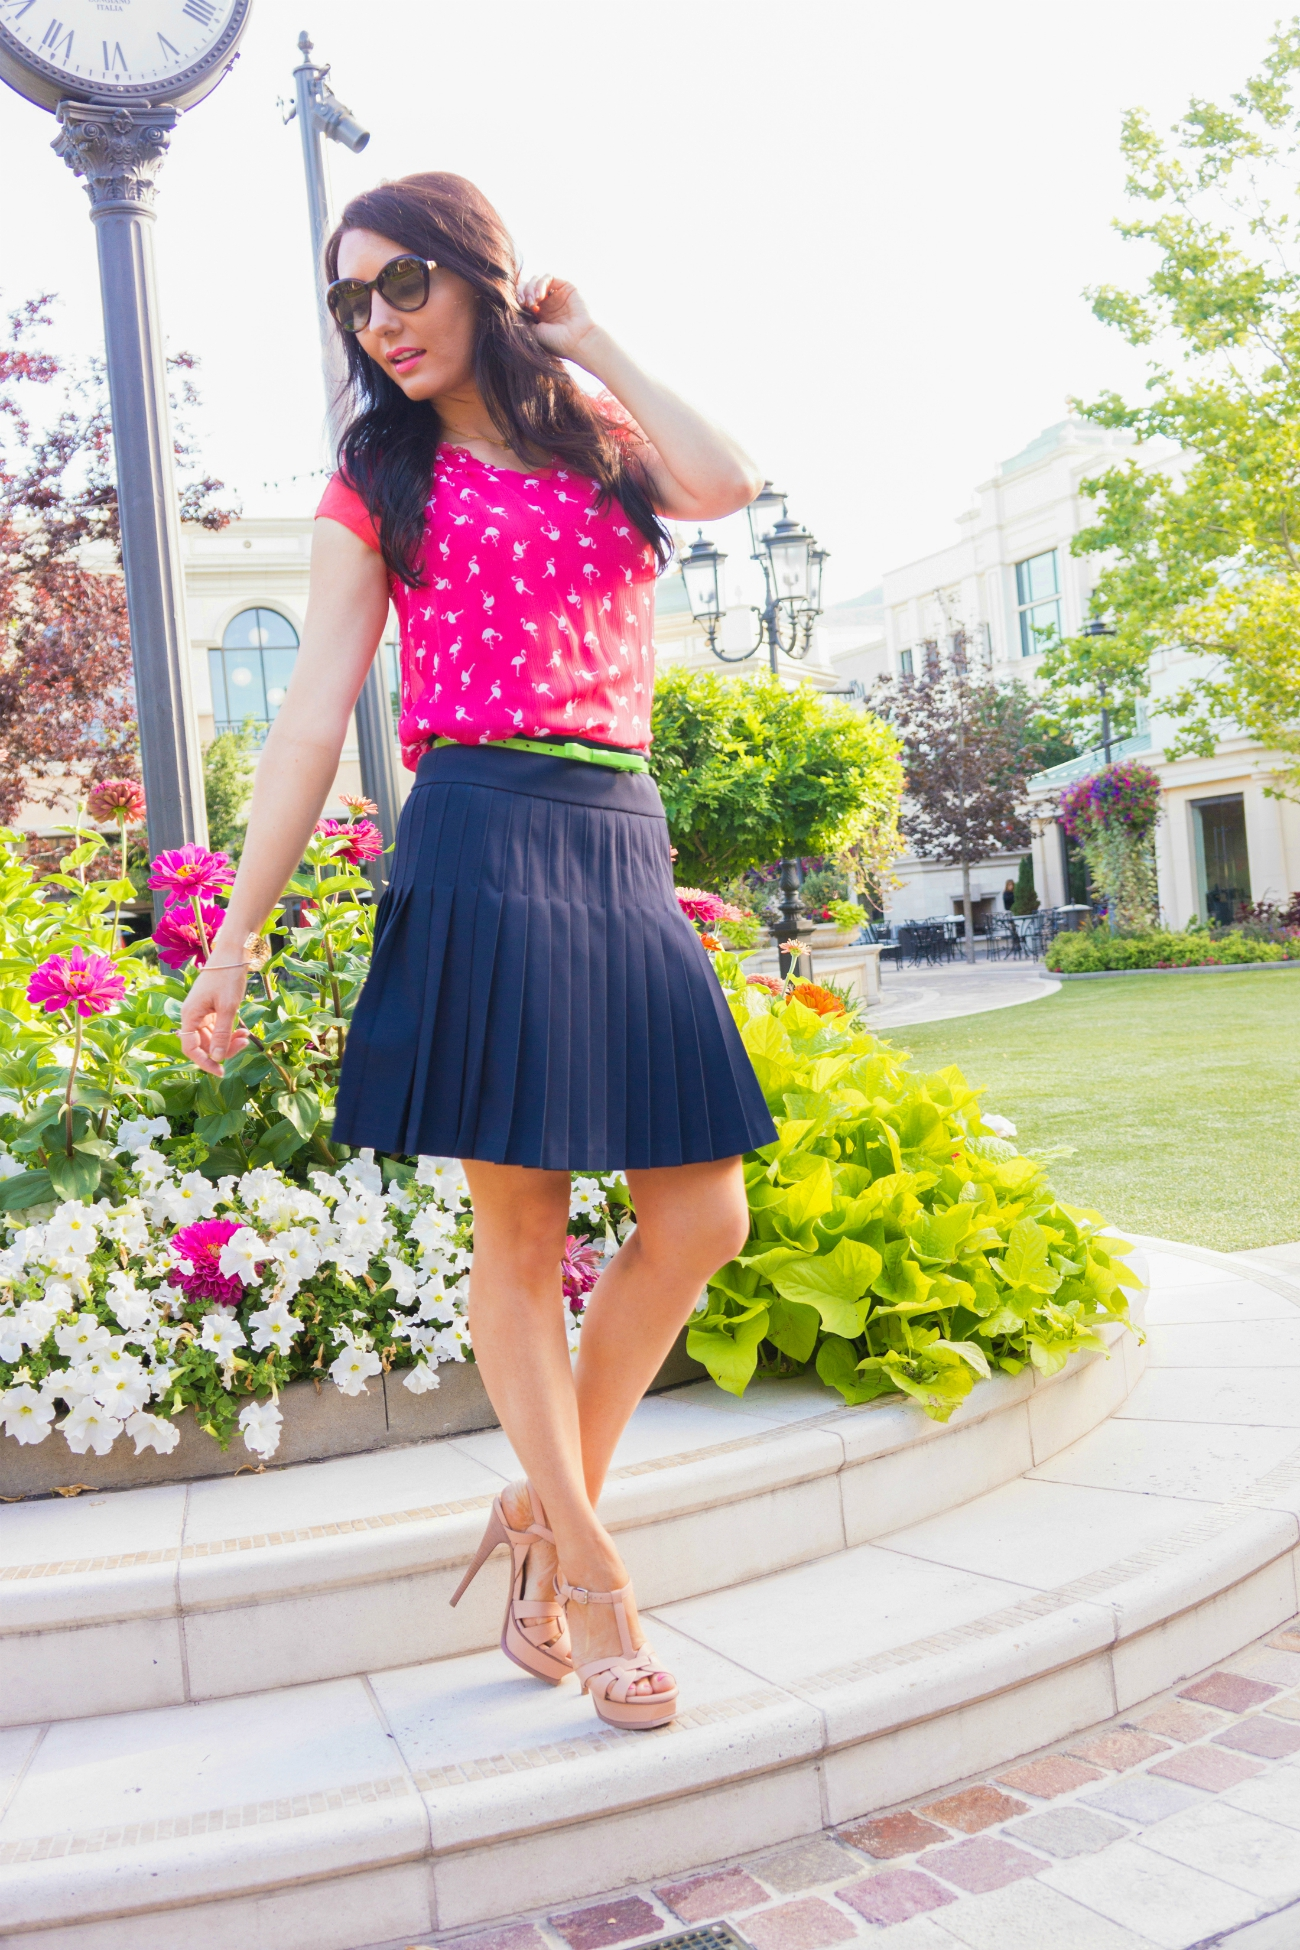 The Sugared Lemon flamingo summer outfit and pleated skirt